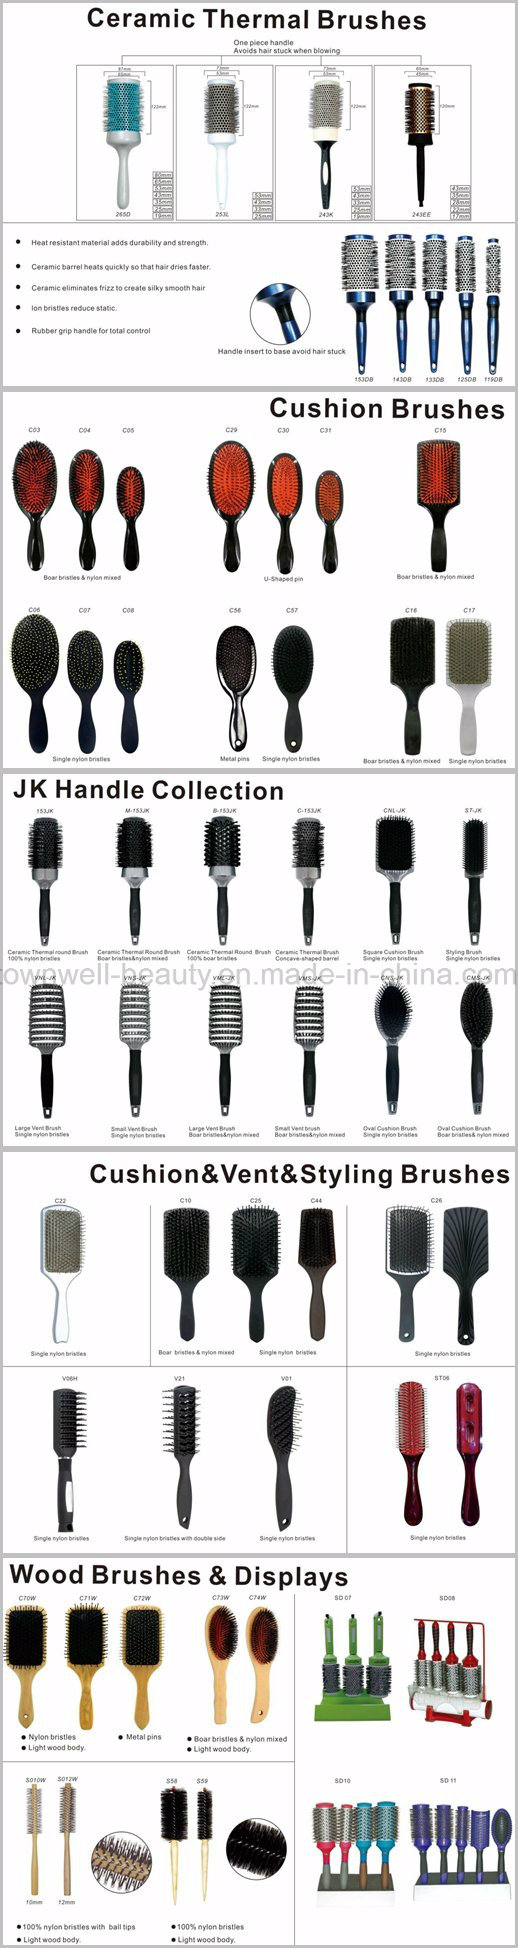 Ceramic Thermal Round Brush and Vent Brush for Hair Styling